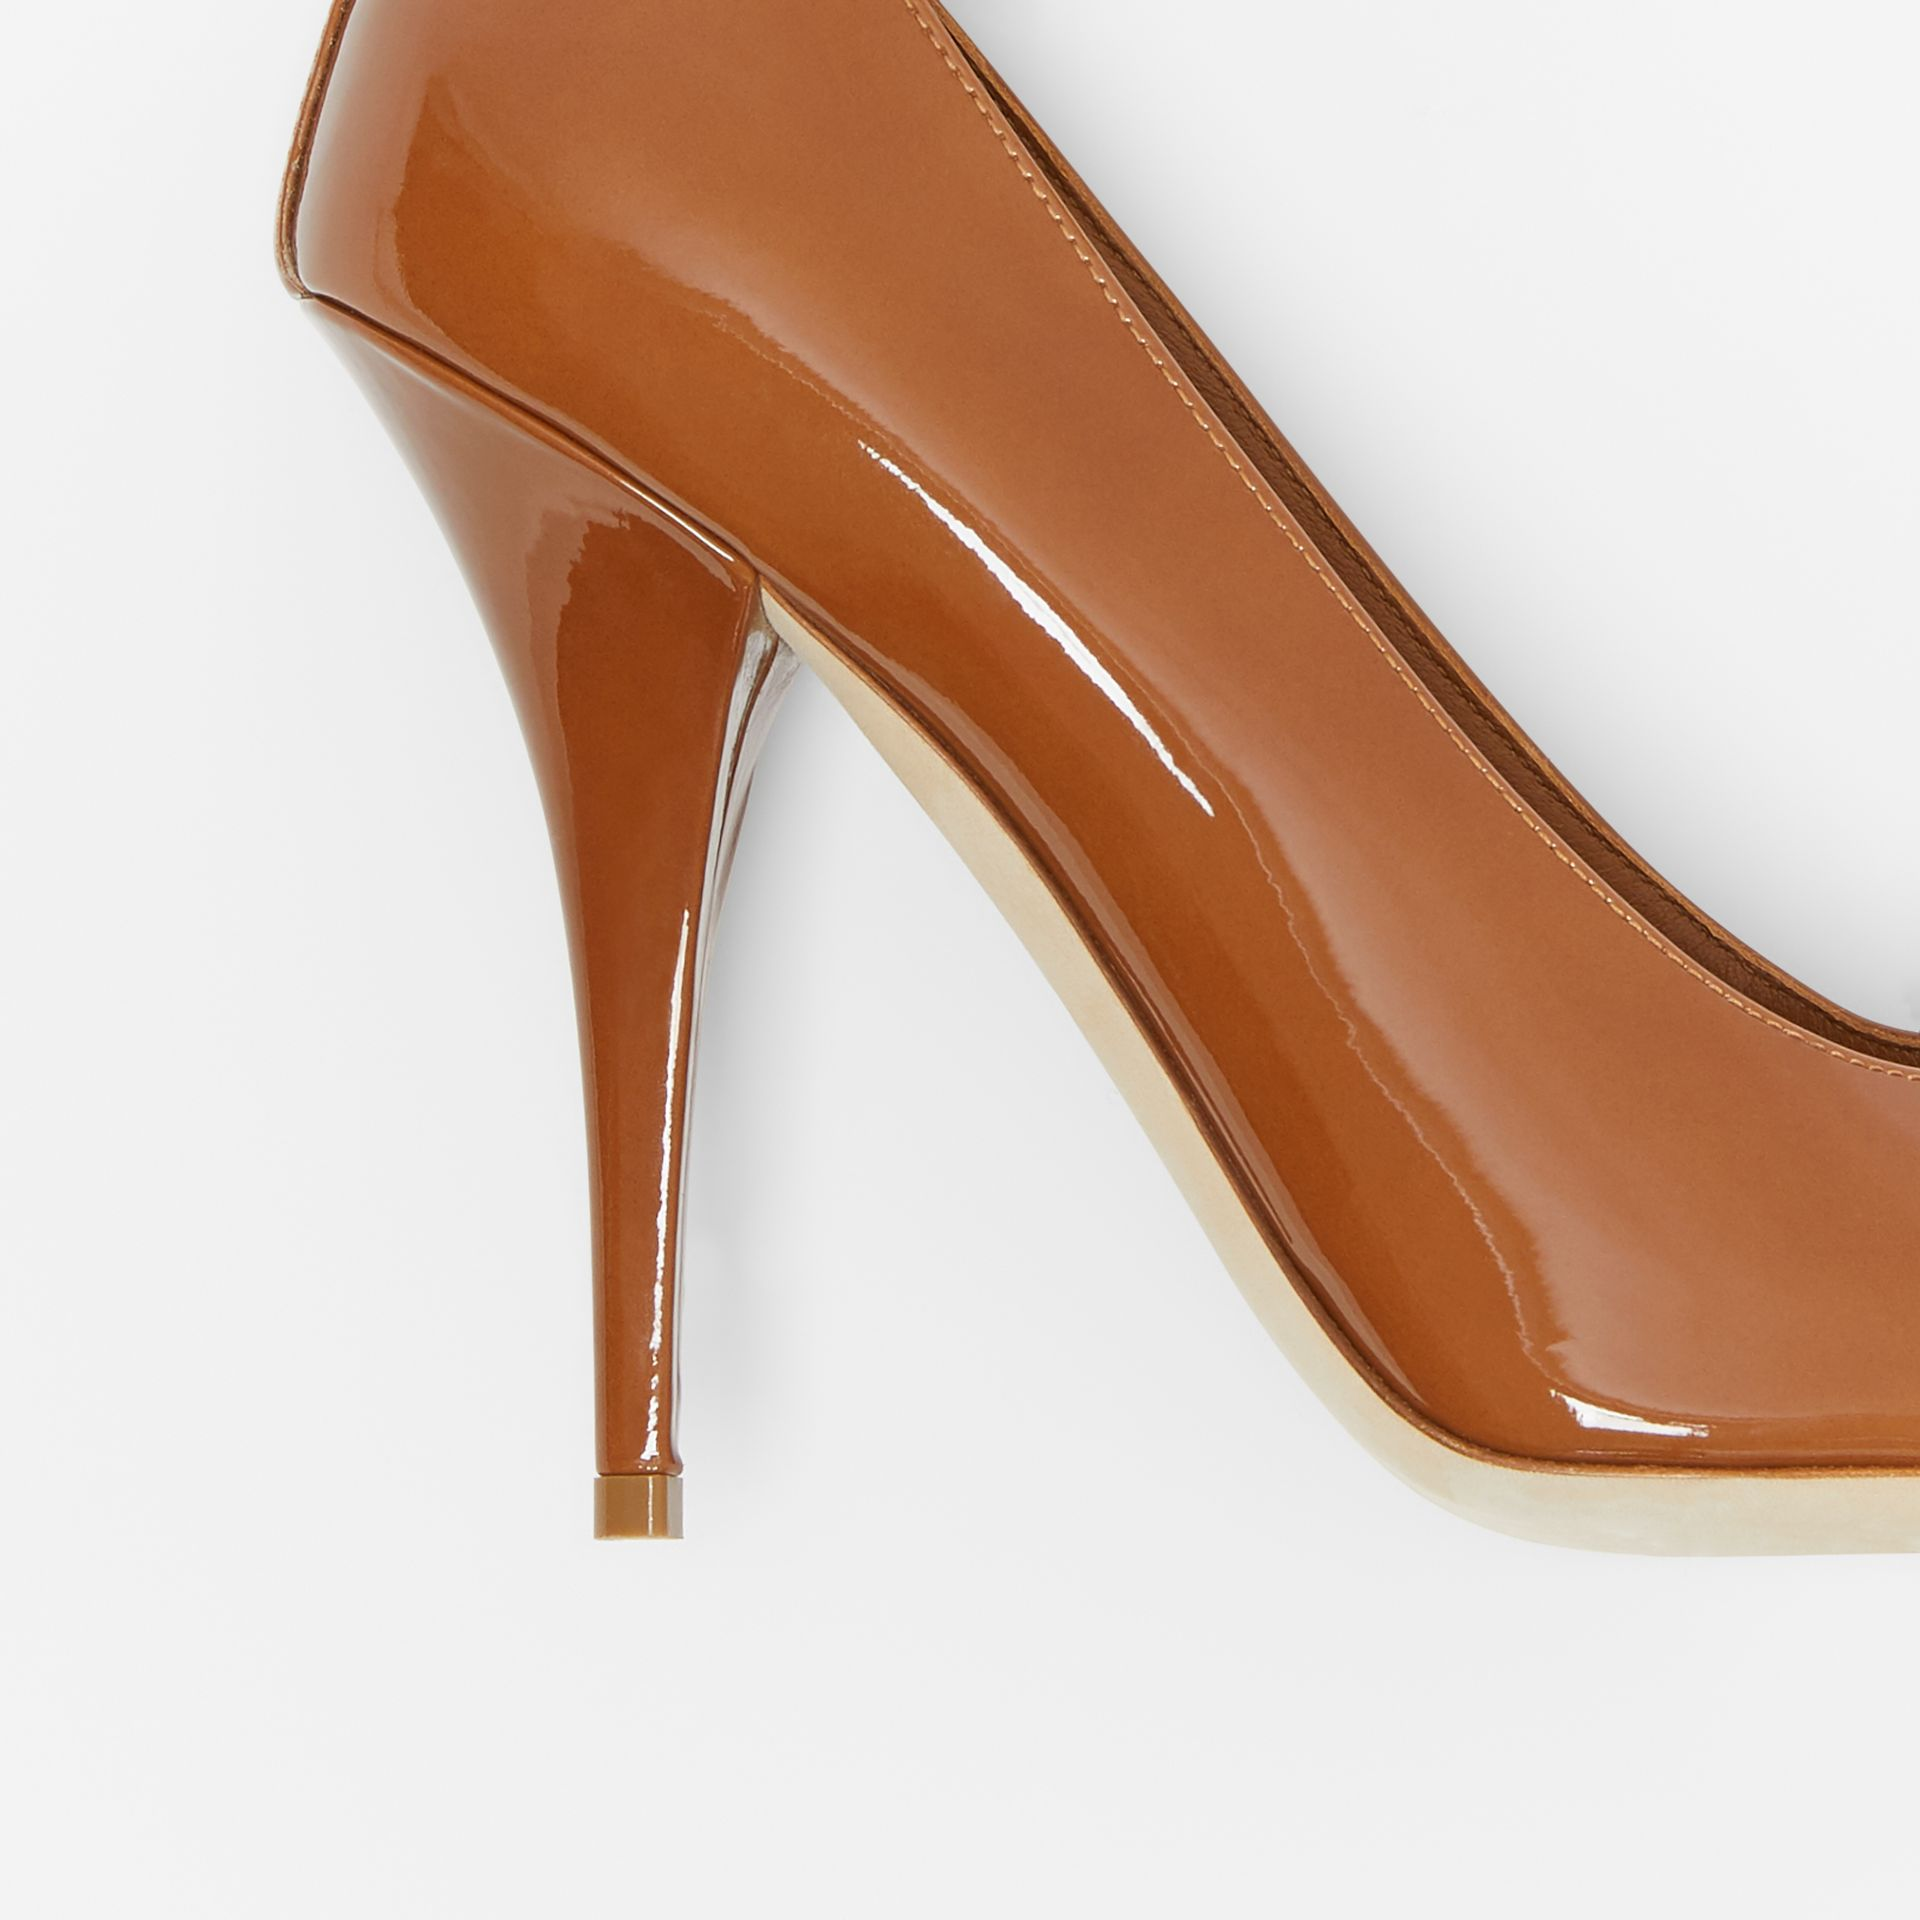 Triple Stud Patent Leather Point-toe Pumps in Tan - Women | Burberry Australia - gallery image 5